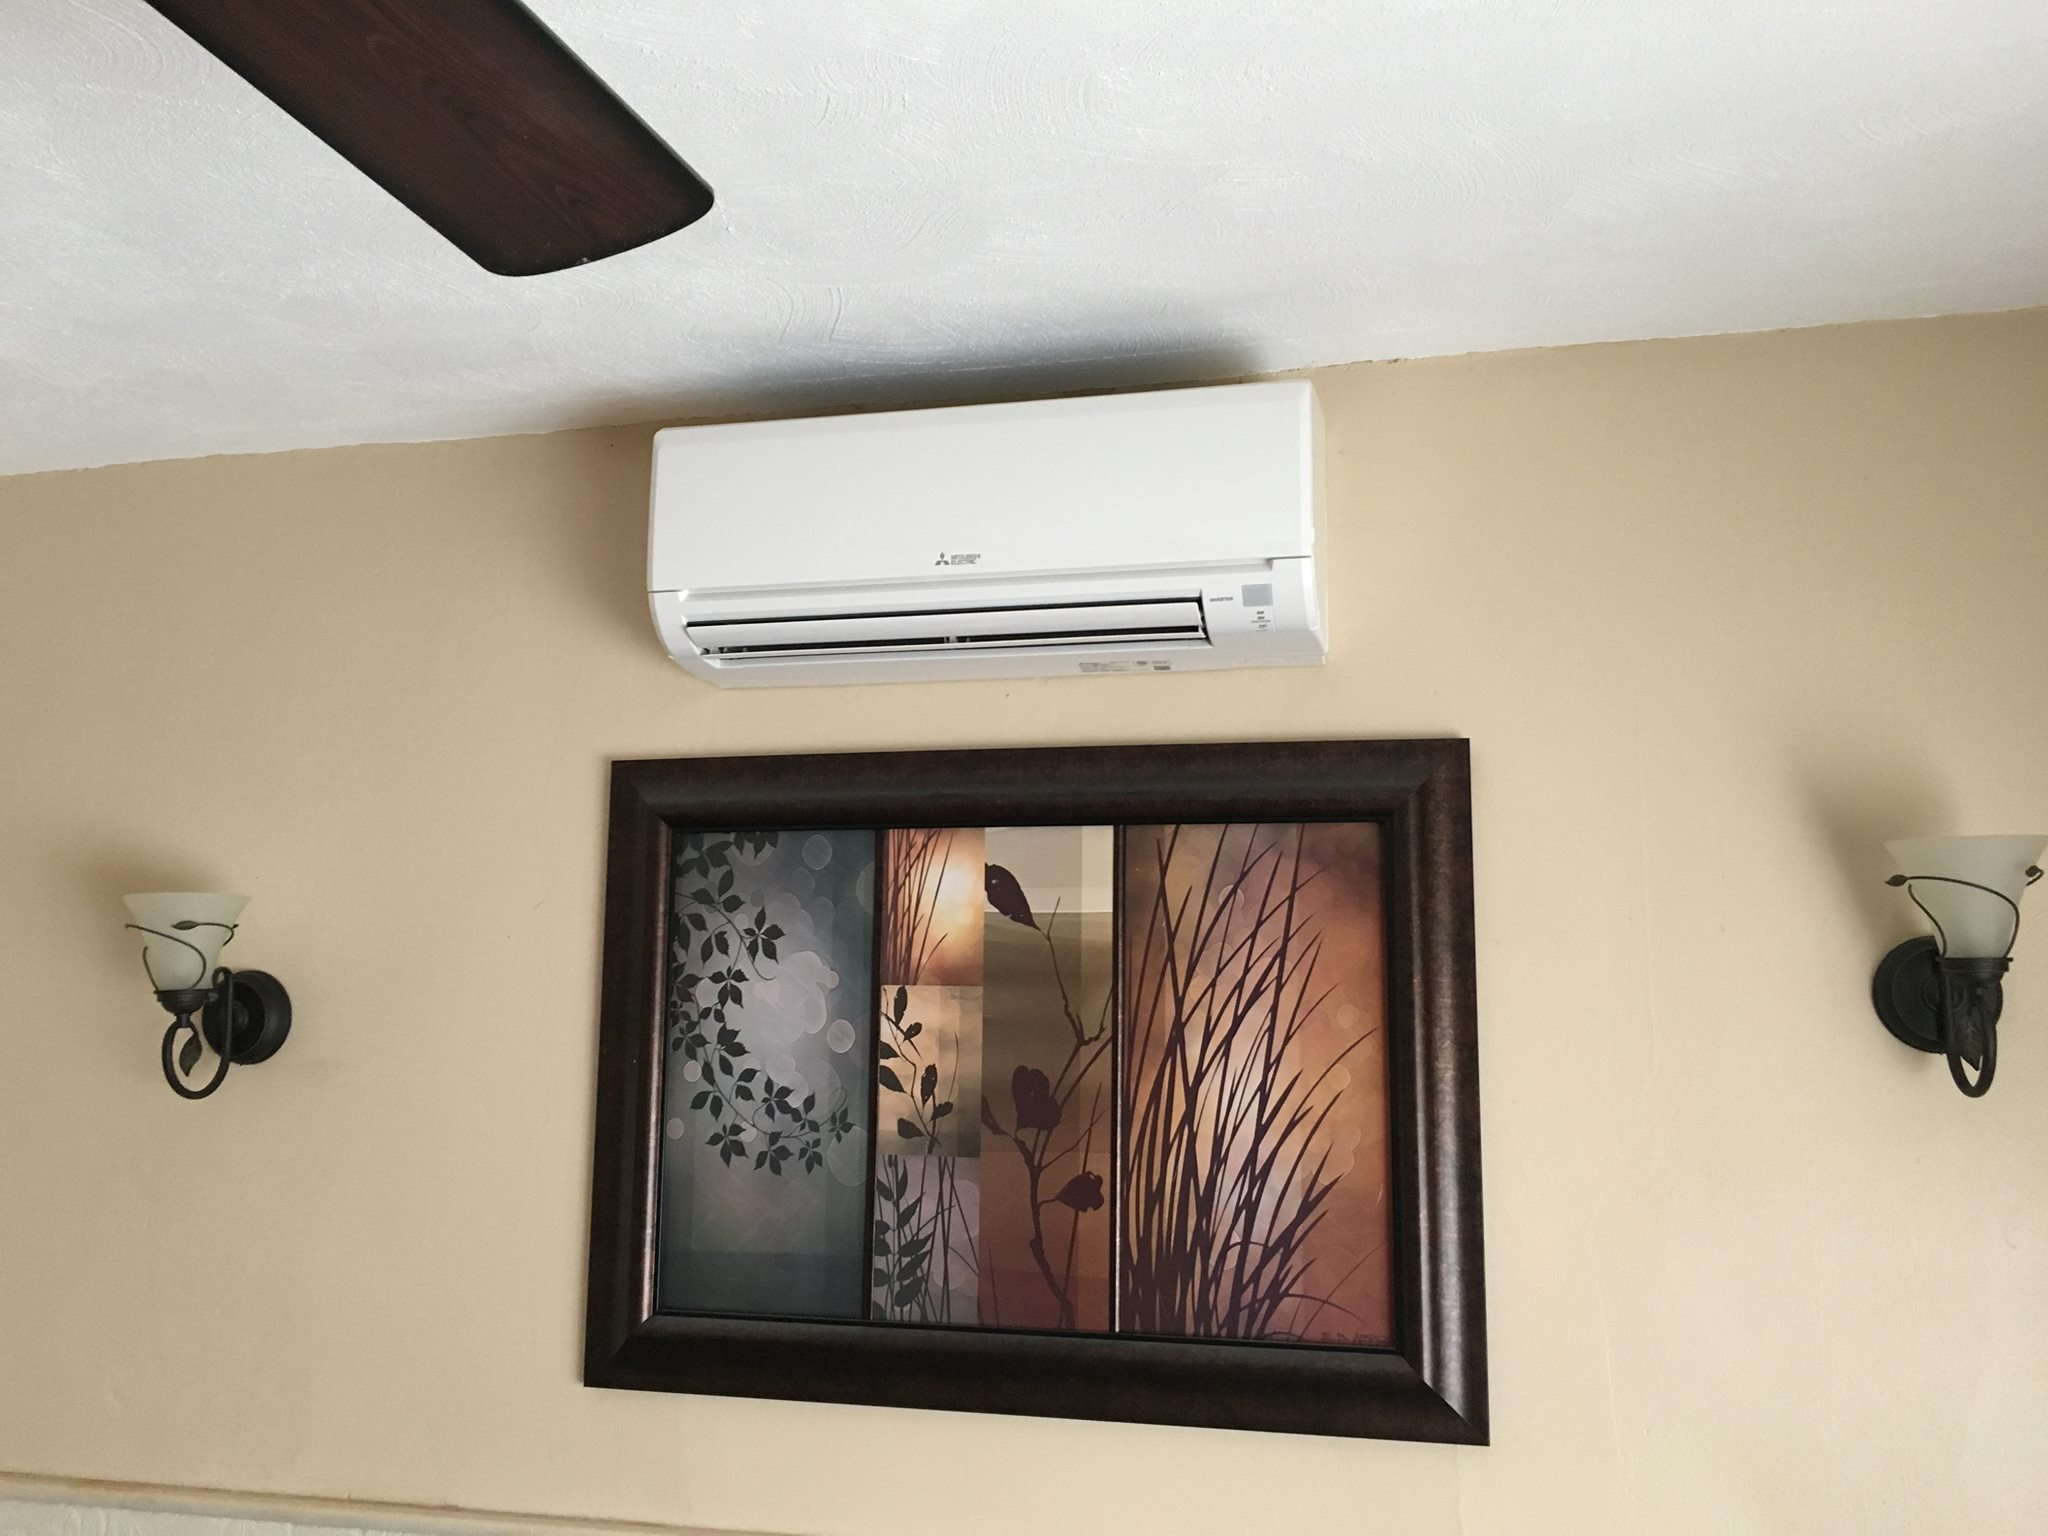 vents central studio cost mitsubishi hvac vs intake split ductless air mini options heating heat and cooling